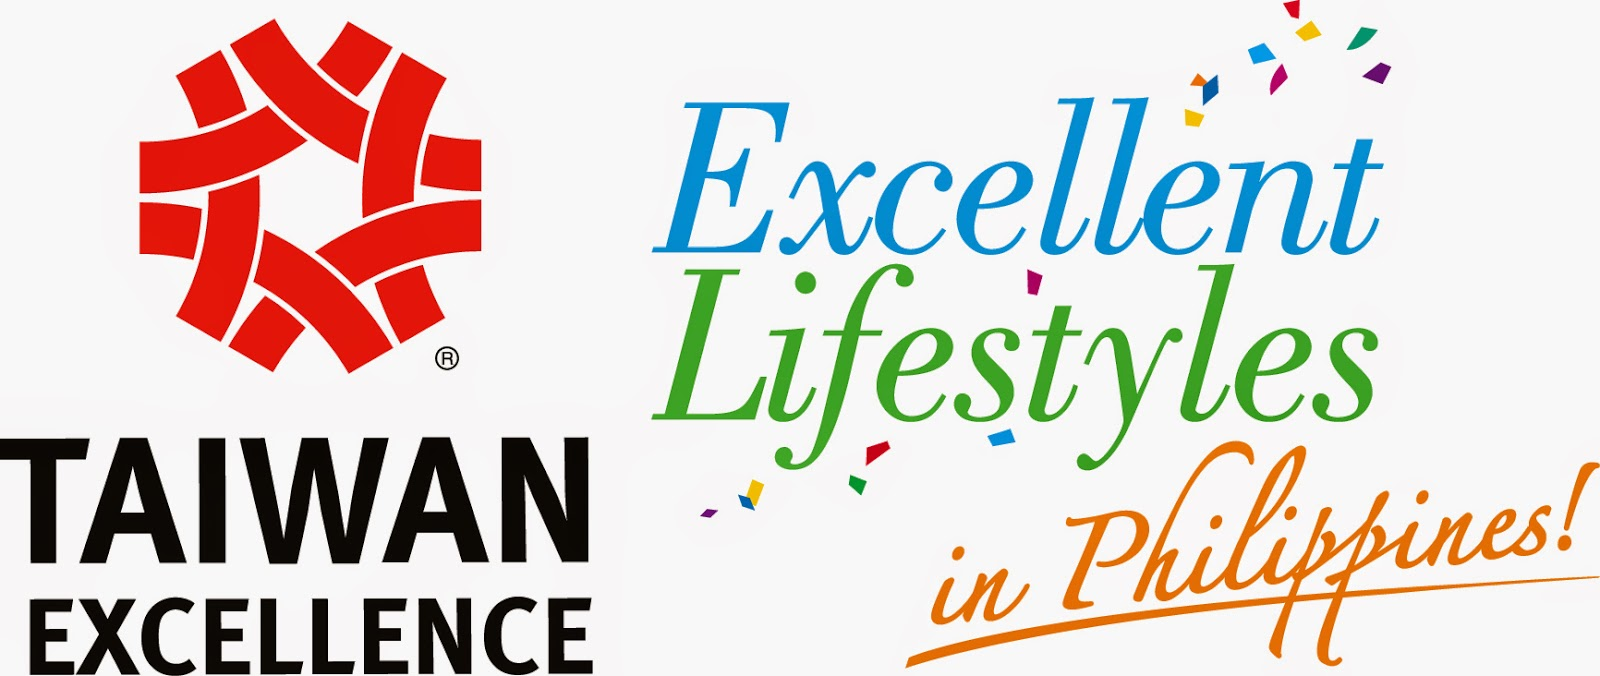 """For the first time the Taiwan Excellence campaign is being launched here in the Philippines. Carrying the theme """"Excellent Lifestyle"""", it doesn't just showcase the 56 excellent brands under Taiwan Excellence. It also lets us recognize how these innovative products enable us to enjoy an excellent lifestyle by simplifying everyday tasks, whether for work or at home."""